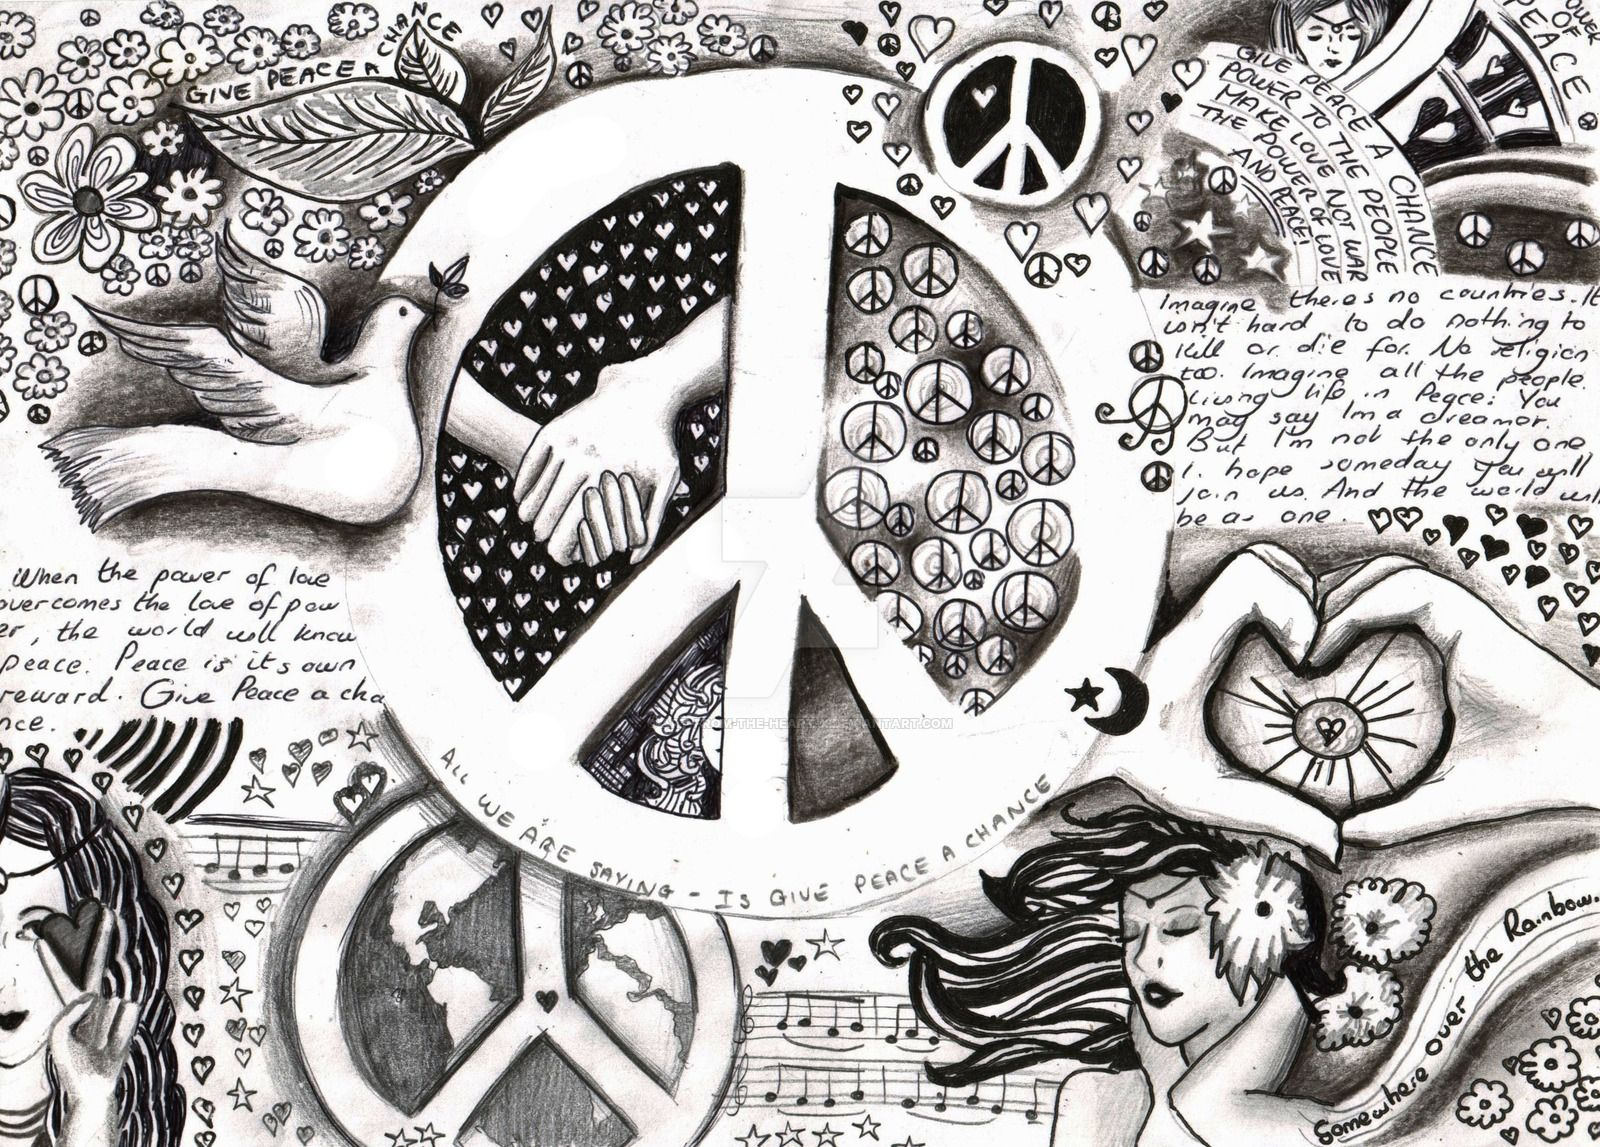 Pin On Peace Yesterday Today And Tomorrow